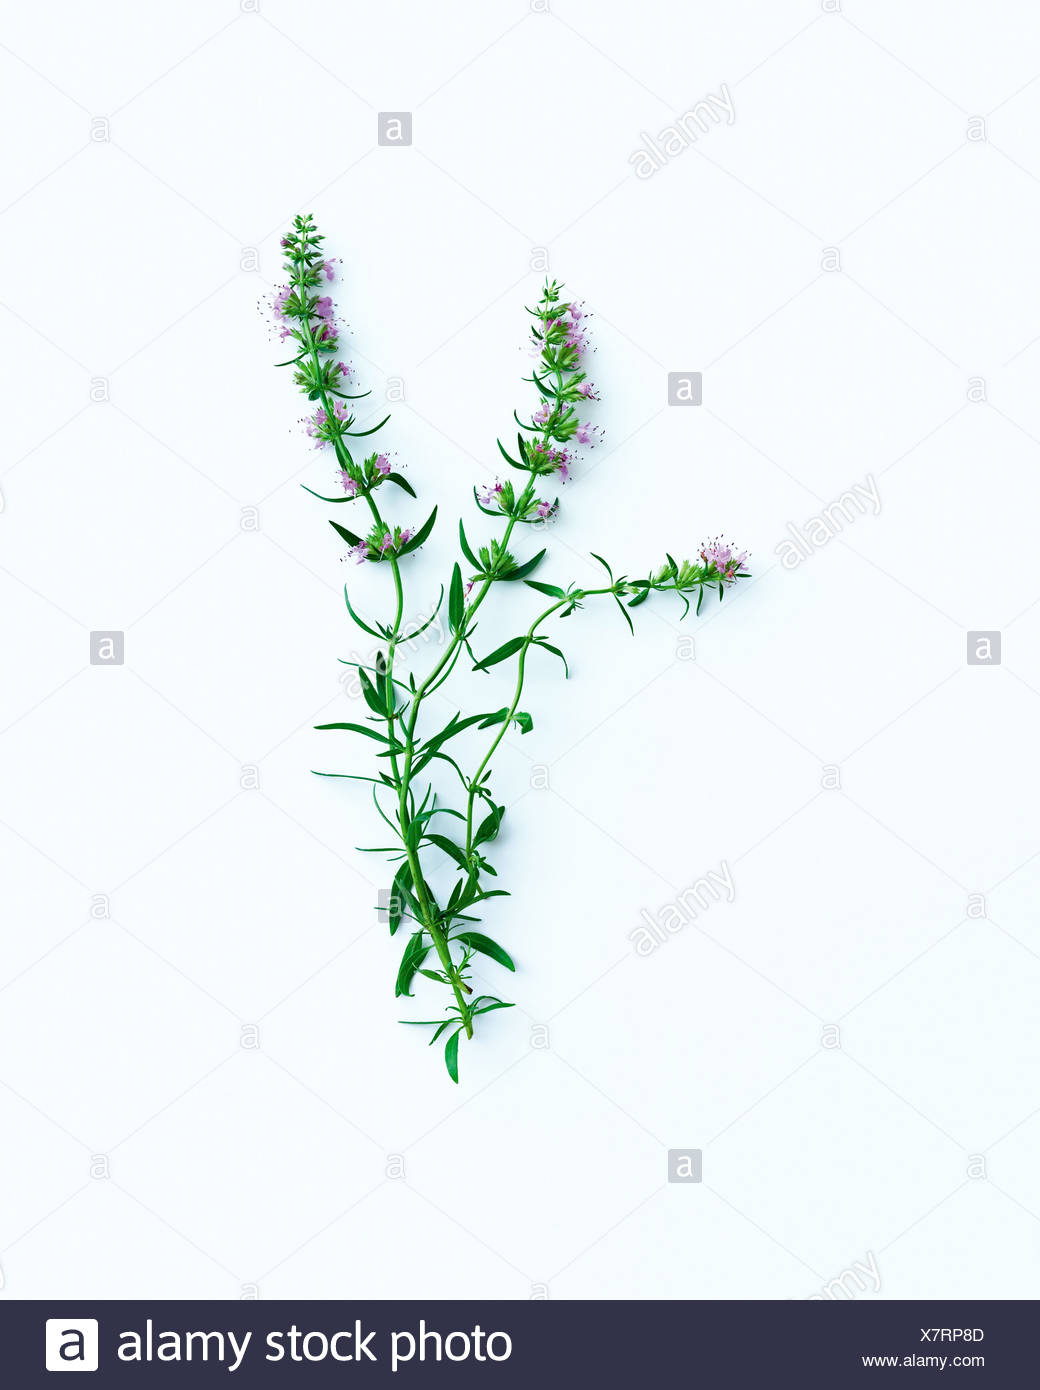 Flower stems and leaves - Stock Image